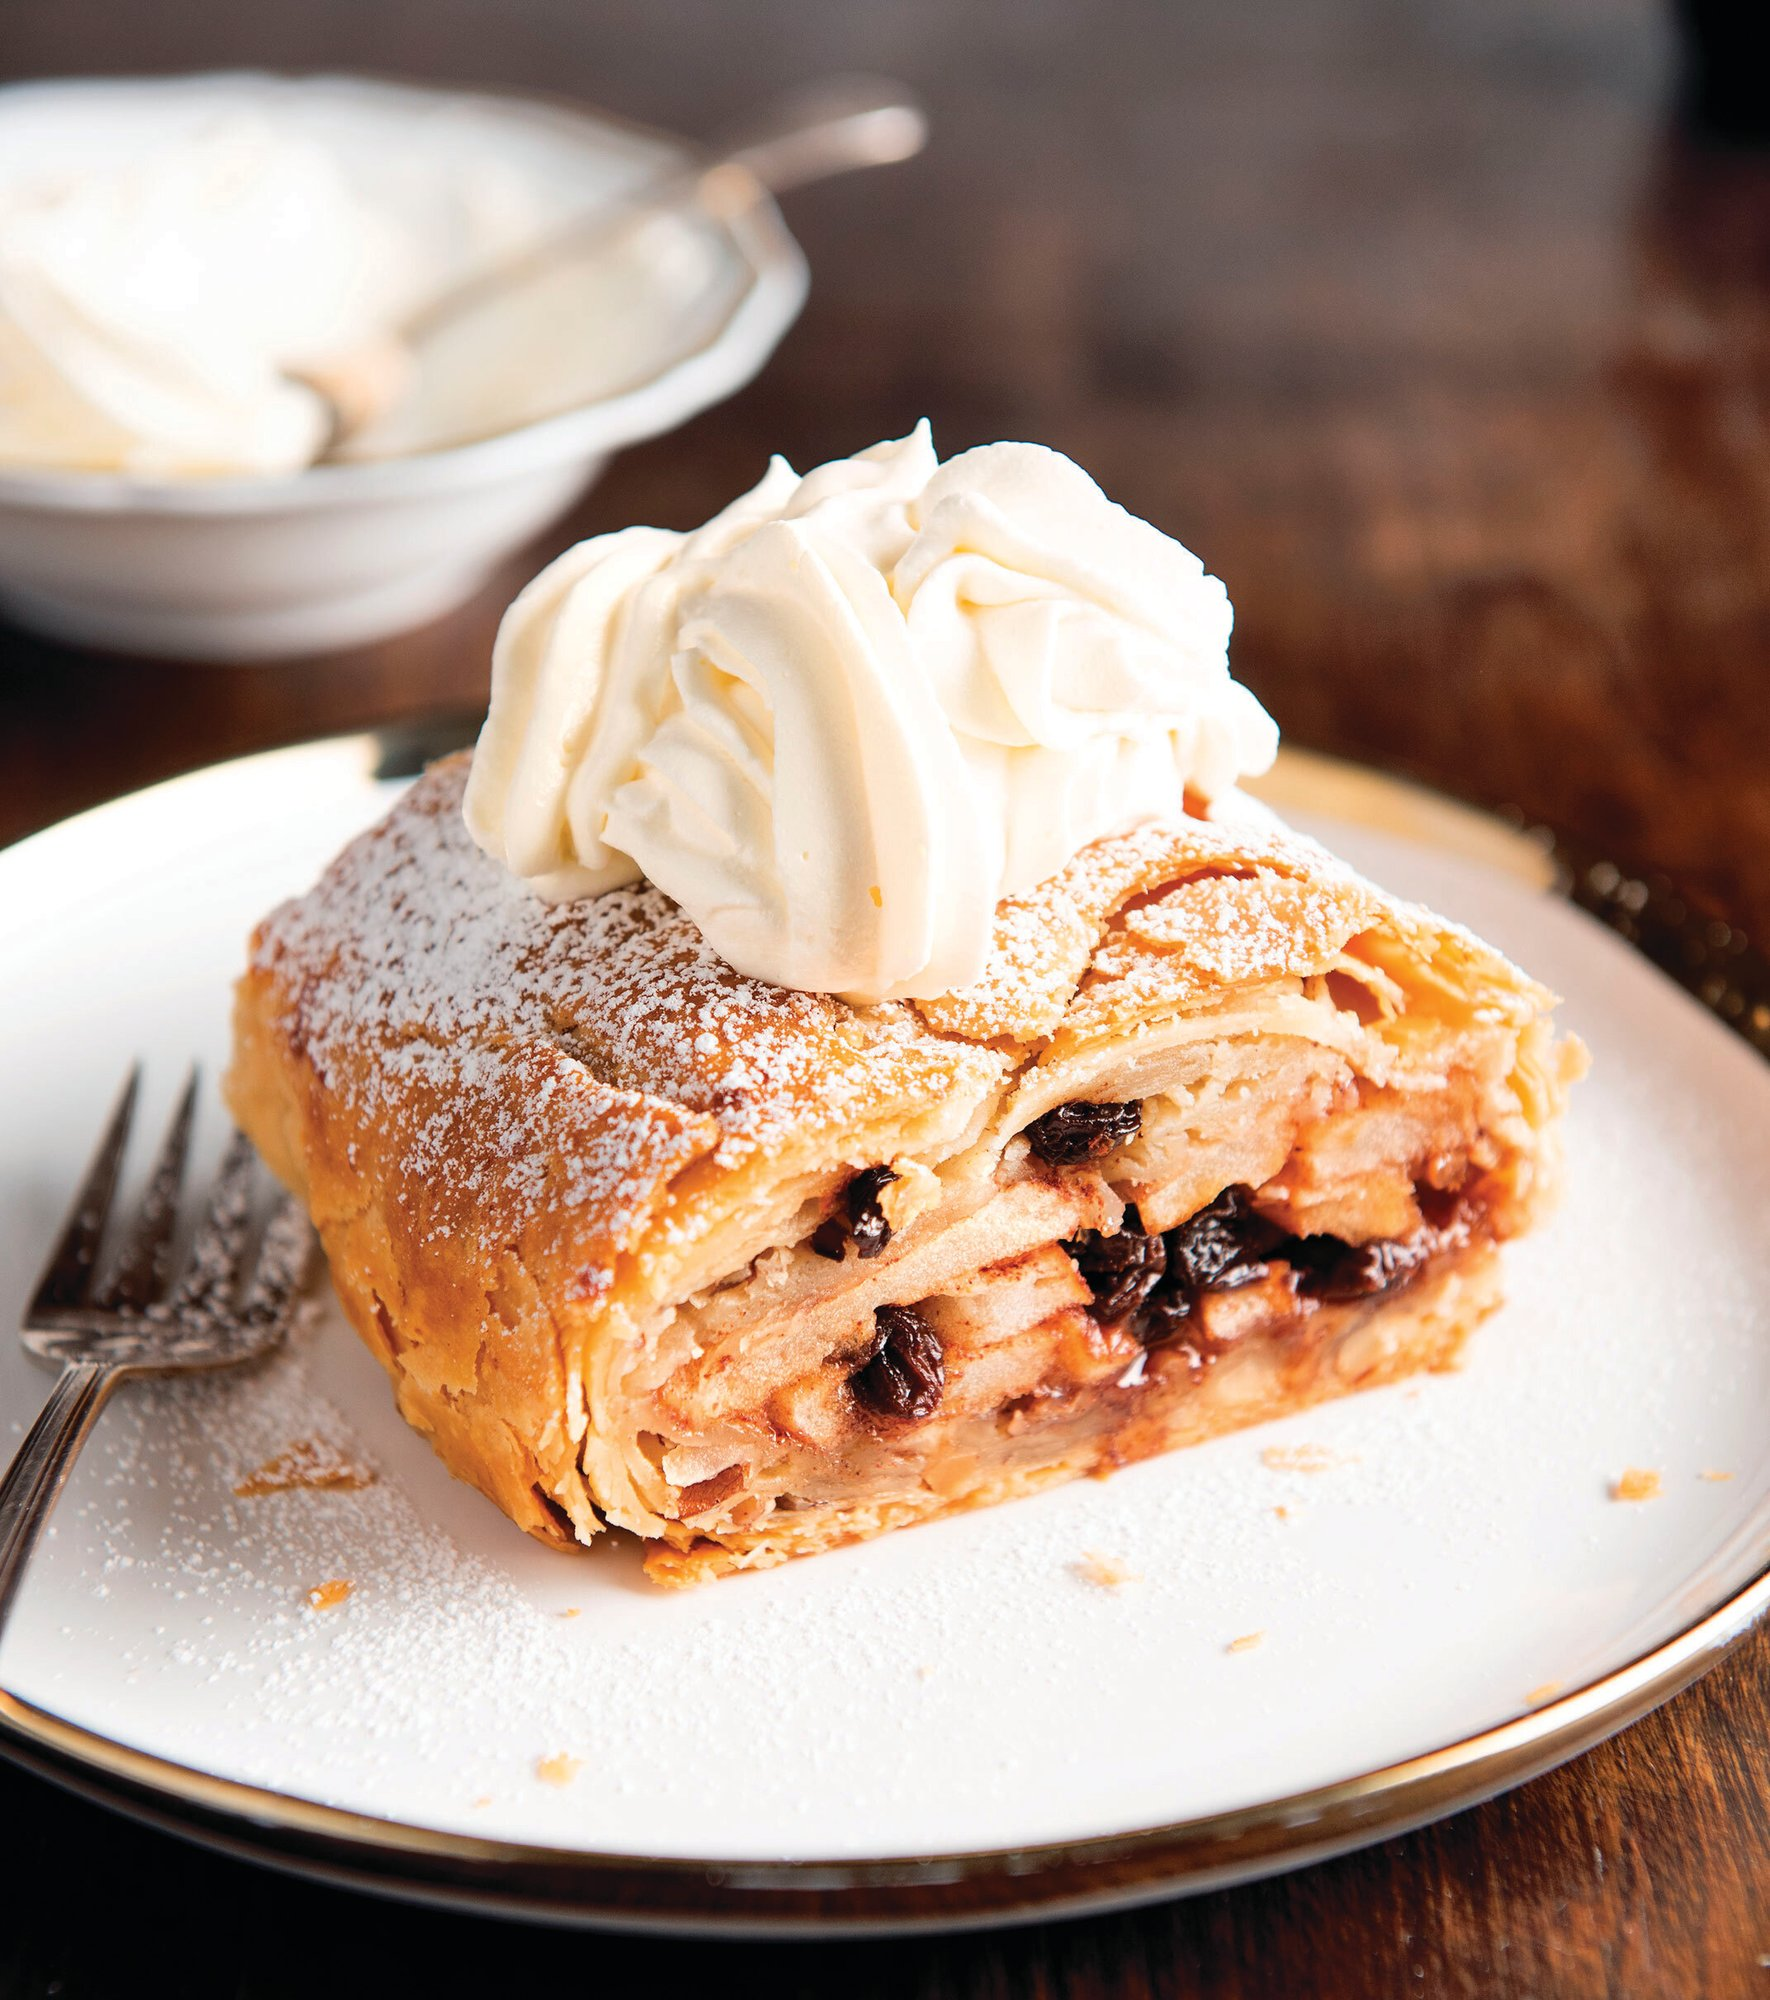 "Seen is a strudel inspired by the film ""Inglourious Basterds"" from the cookbook ""Binging with Babish: 100 Recipes Recreated from Your Favorite Movies and TV Shows"" by Andrew Rea."